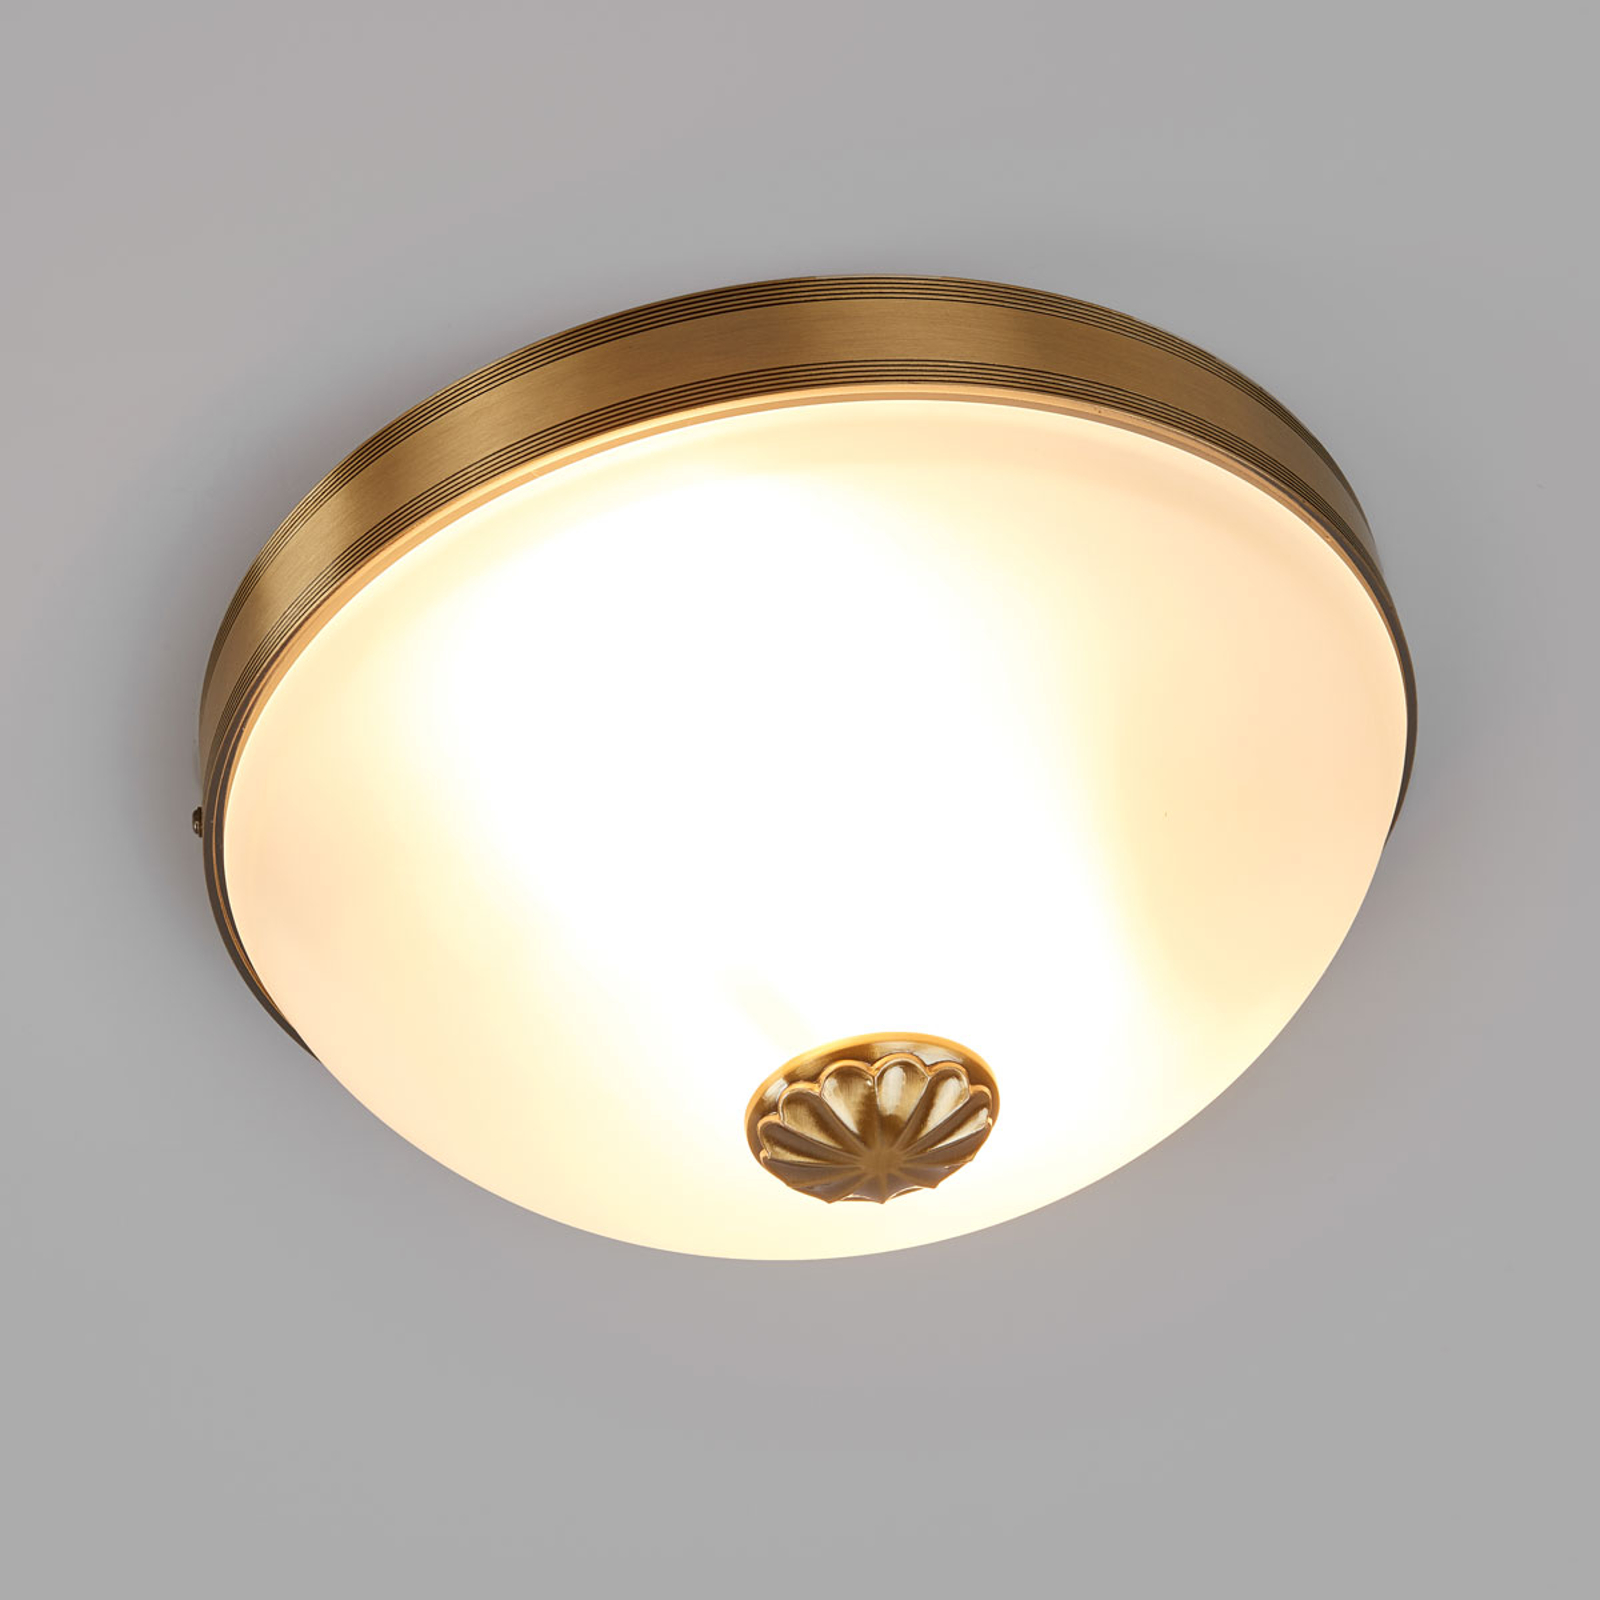 Beautiful ceiling light Impery in antique style_3001131_1